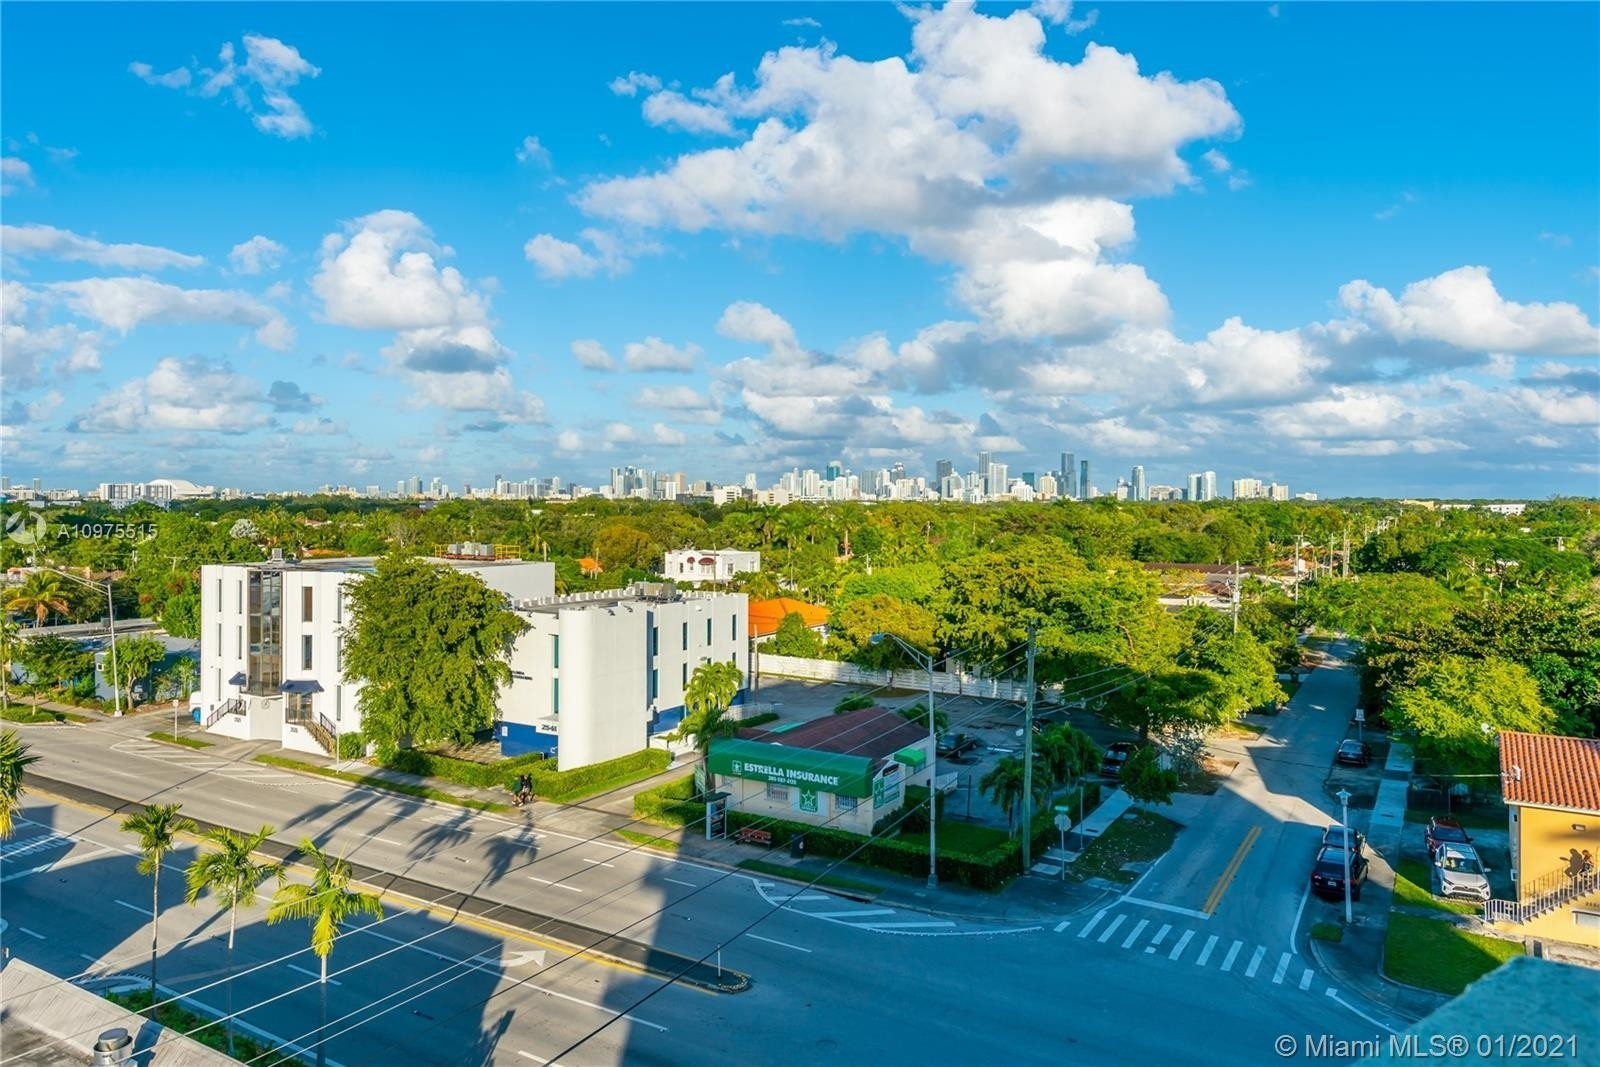 Property à 2550 SW 27th Ave , 605 The Pines, Miami, FL 33133